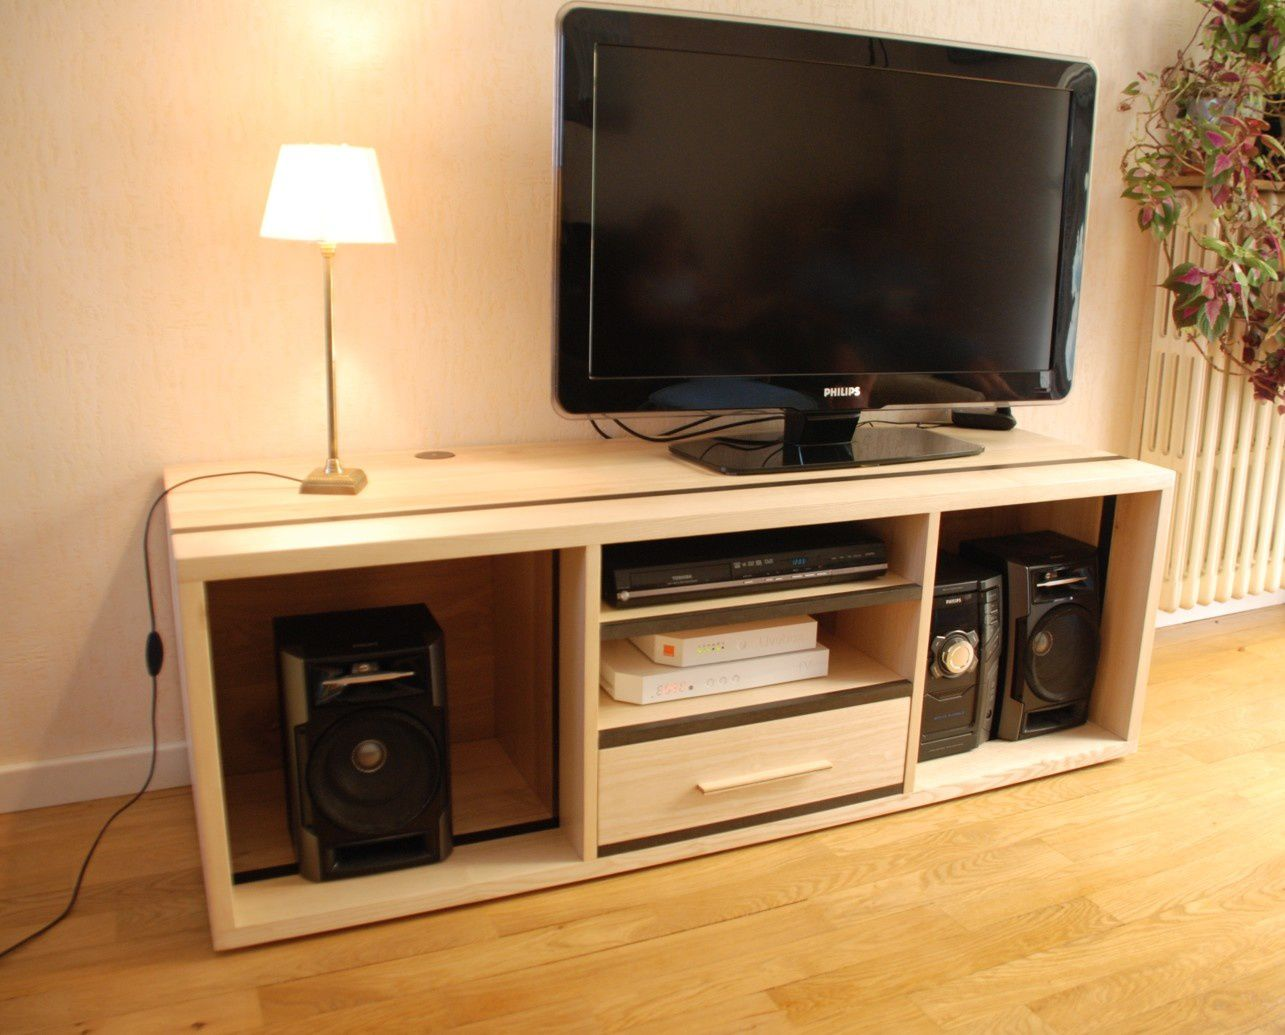 Album meuble tv hifi contemporain atelier pourquoi pas mobilier design - Meubles tv hifi design ...